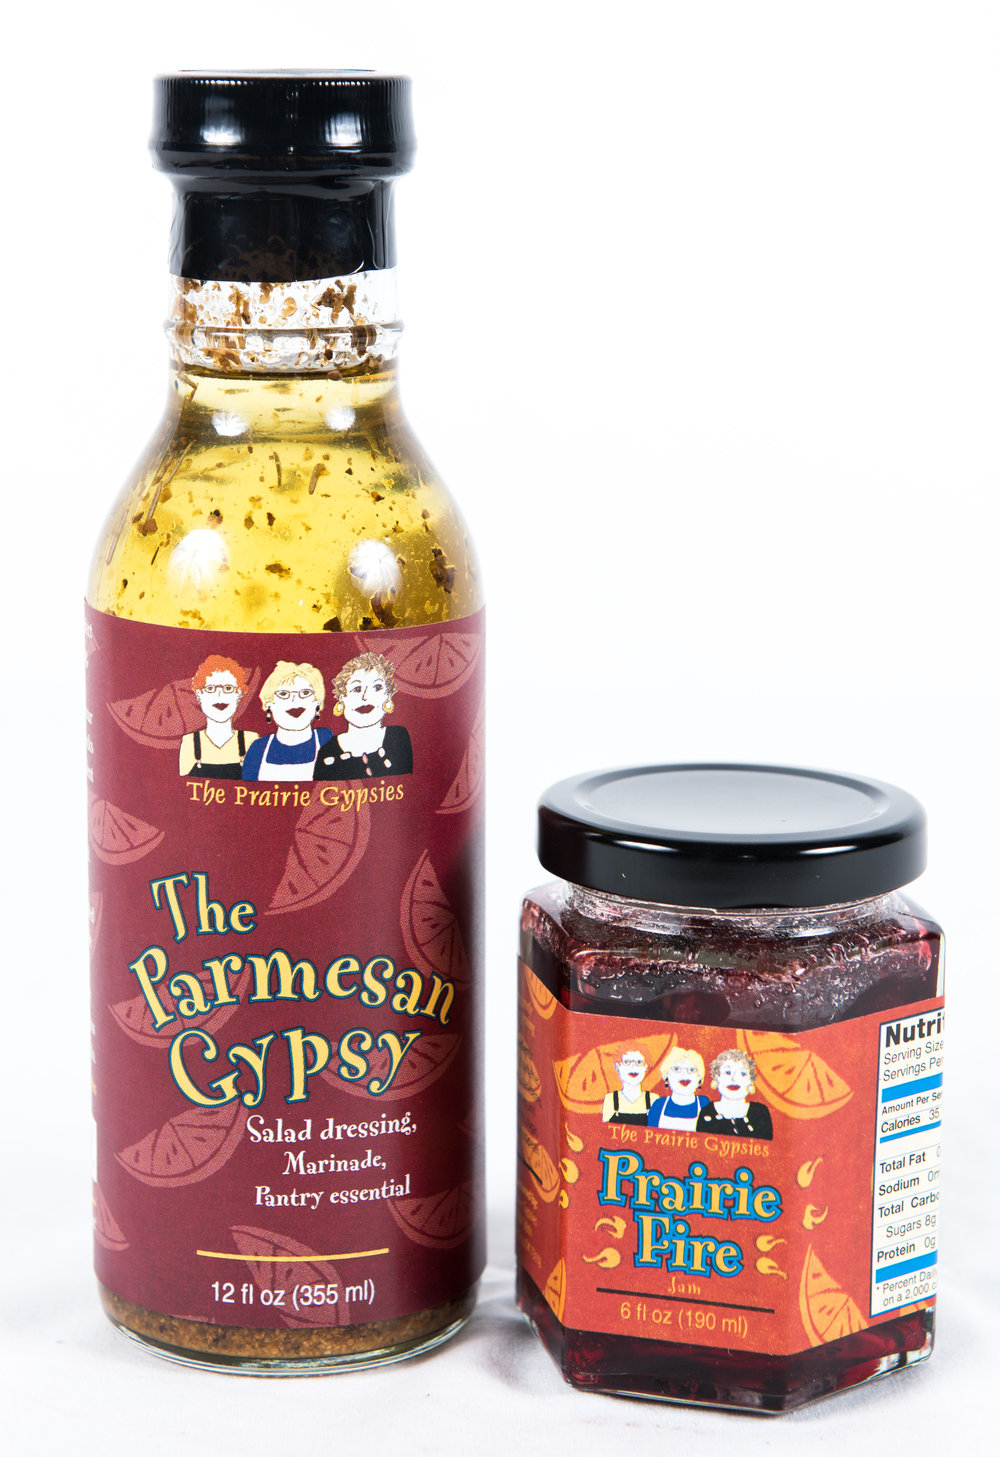 4. The Prairie Gypsies Jams & Dressing, $7.50 each